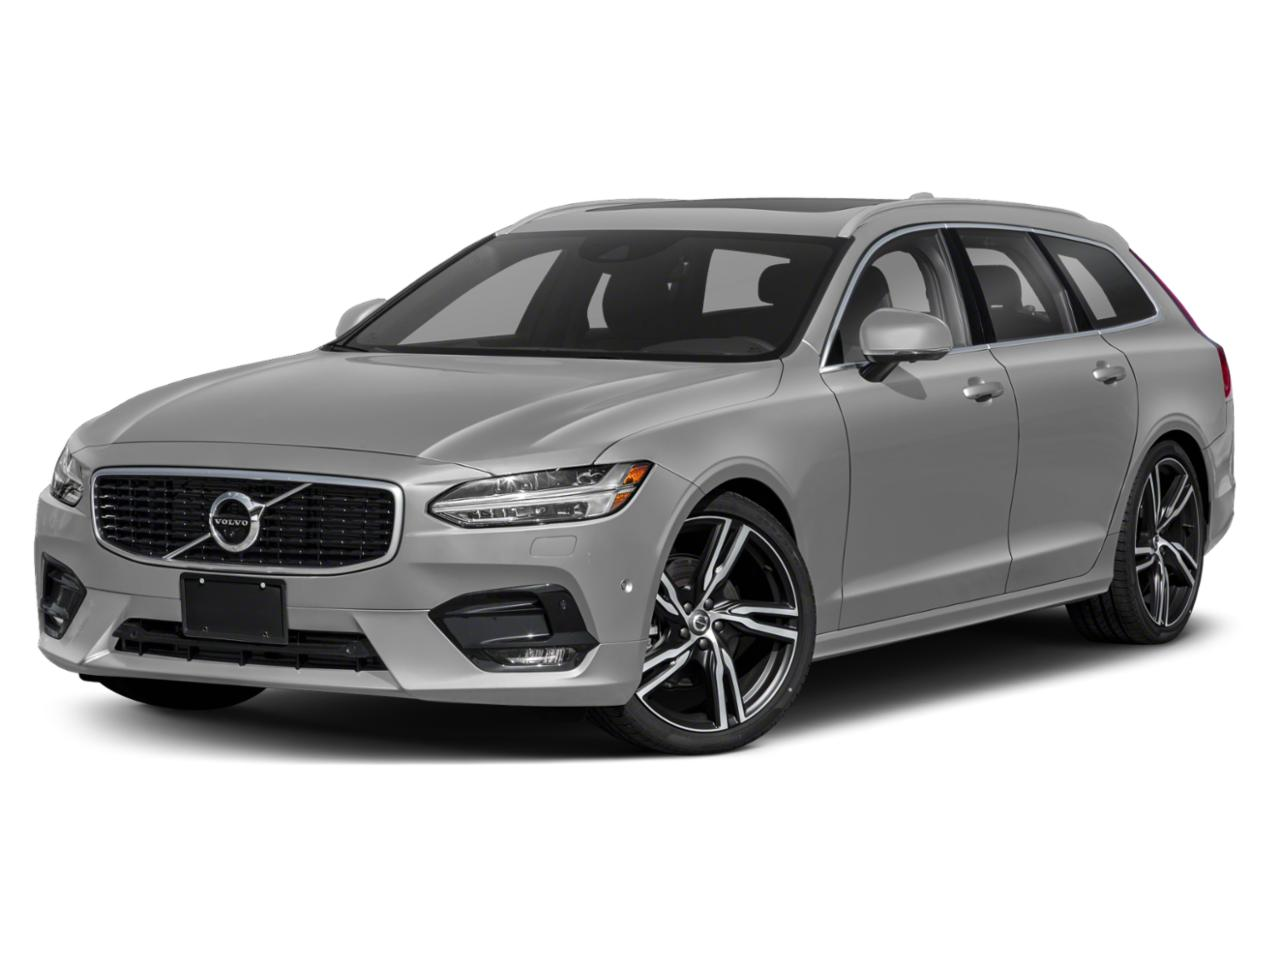 2020 Volvo V90 Vehicle Photo in Grapevine, TX 76051